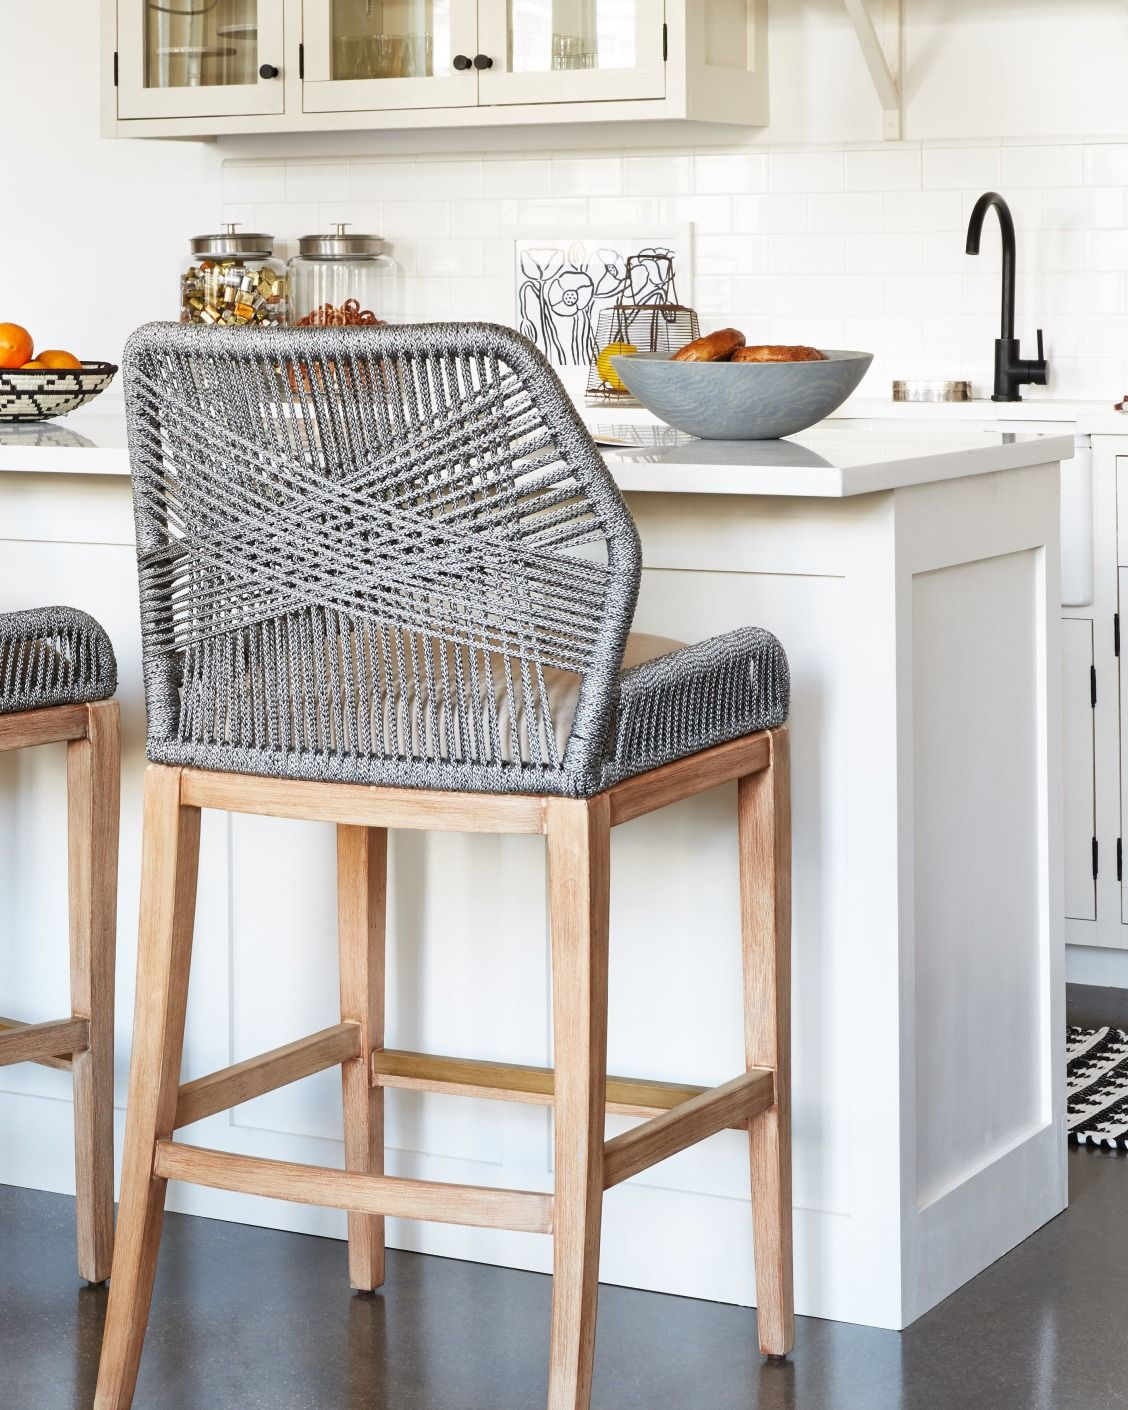 Merveilleux These Woven Rope Counter Stools Are Such A Fun, Unexpected Kitchen Accent!